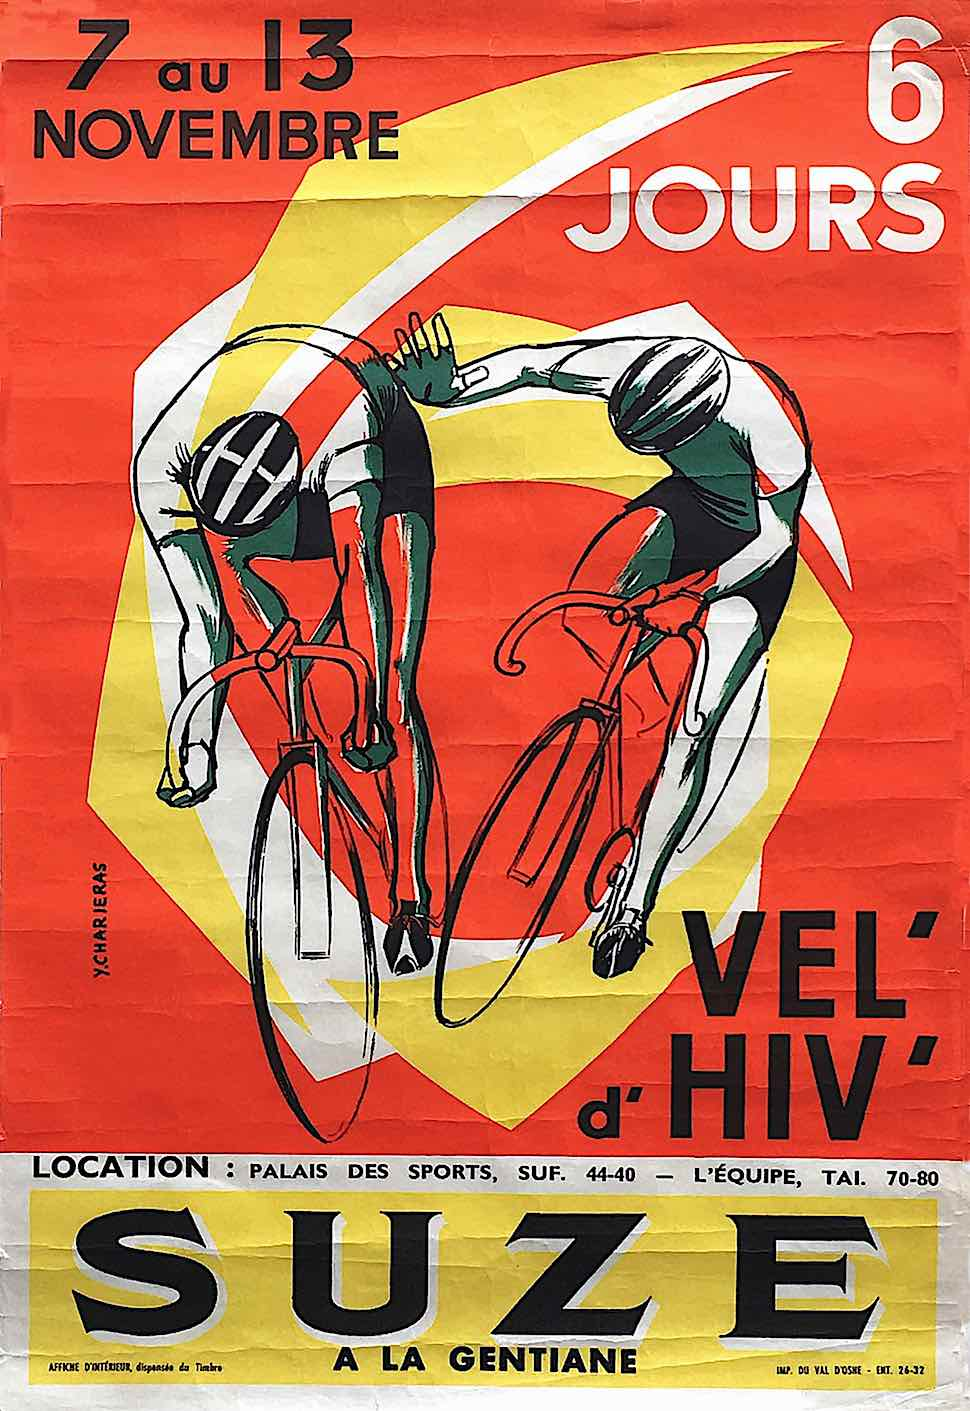 a Y. Charieras 1948 poster for SUZE a la gentiane bycycle racing